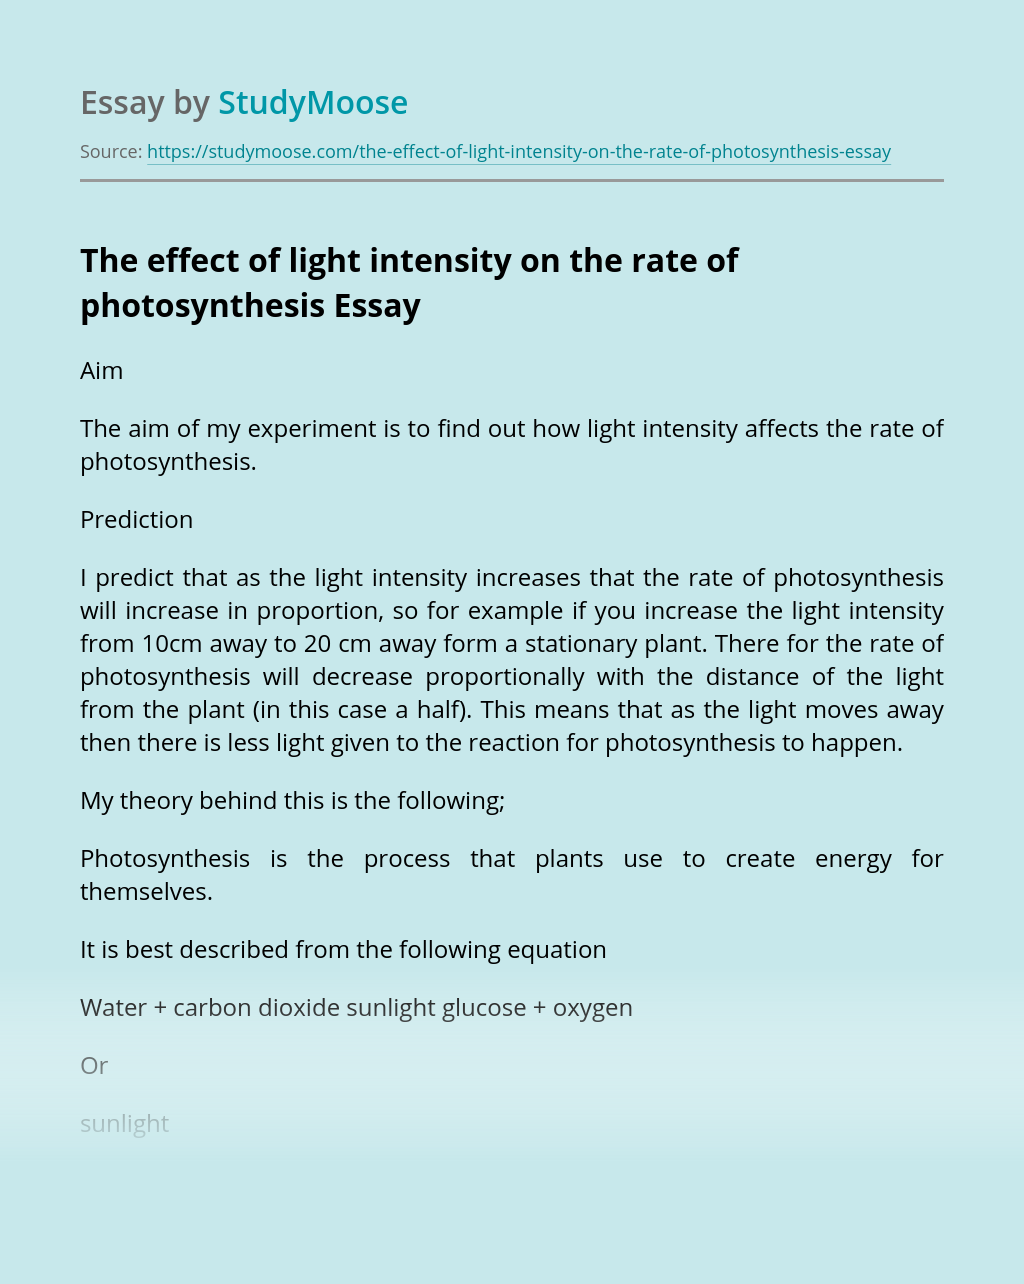 The effect of light intensity on the rate of photosynthesis